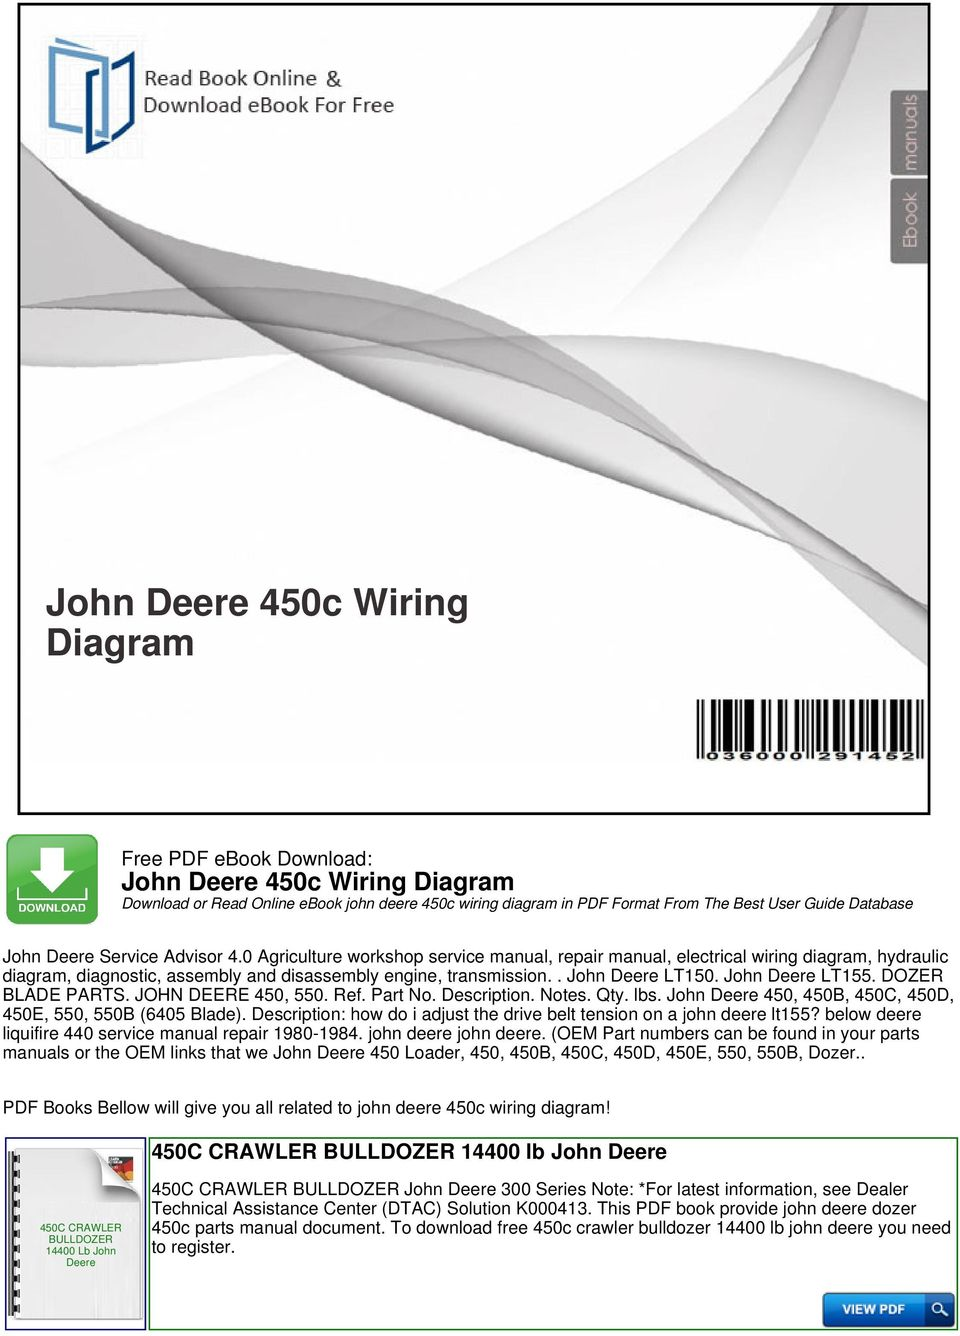 John Deere 450c Wiring Diagram Pdf Bale King Dozer Blade Parts 450 550 Ref Part No Description